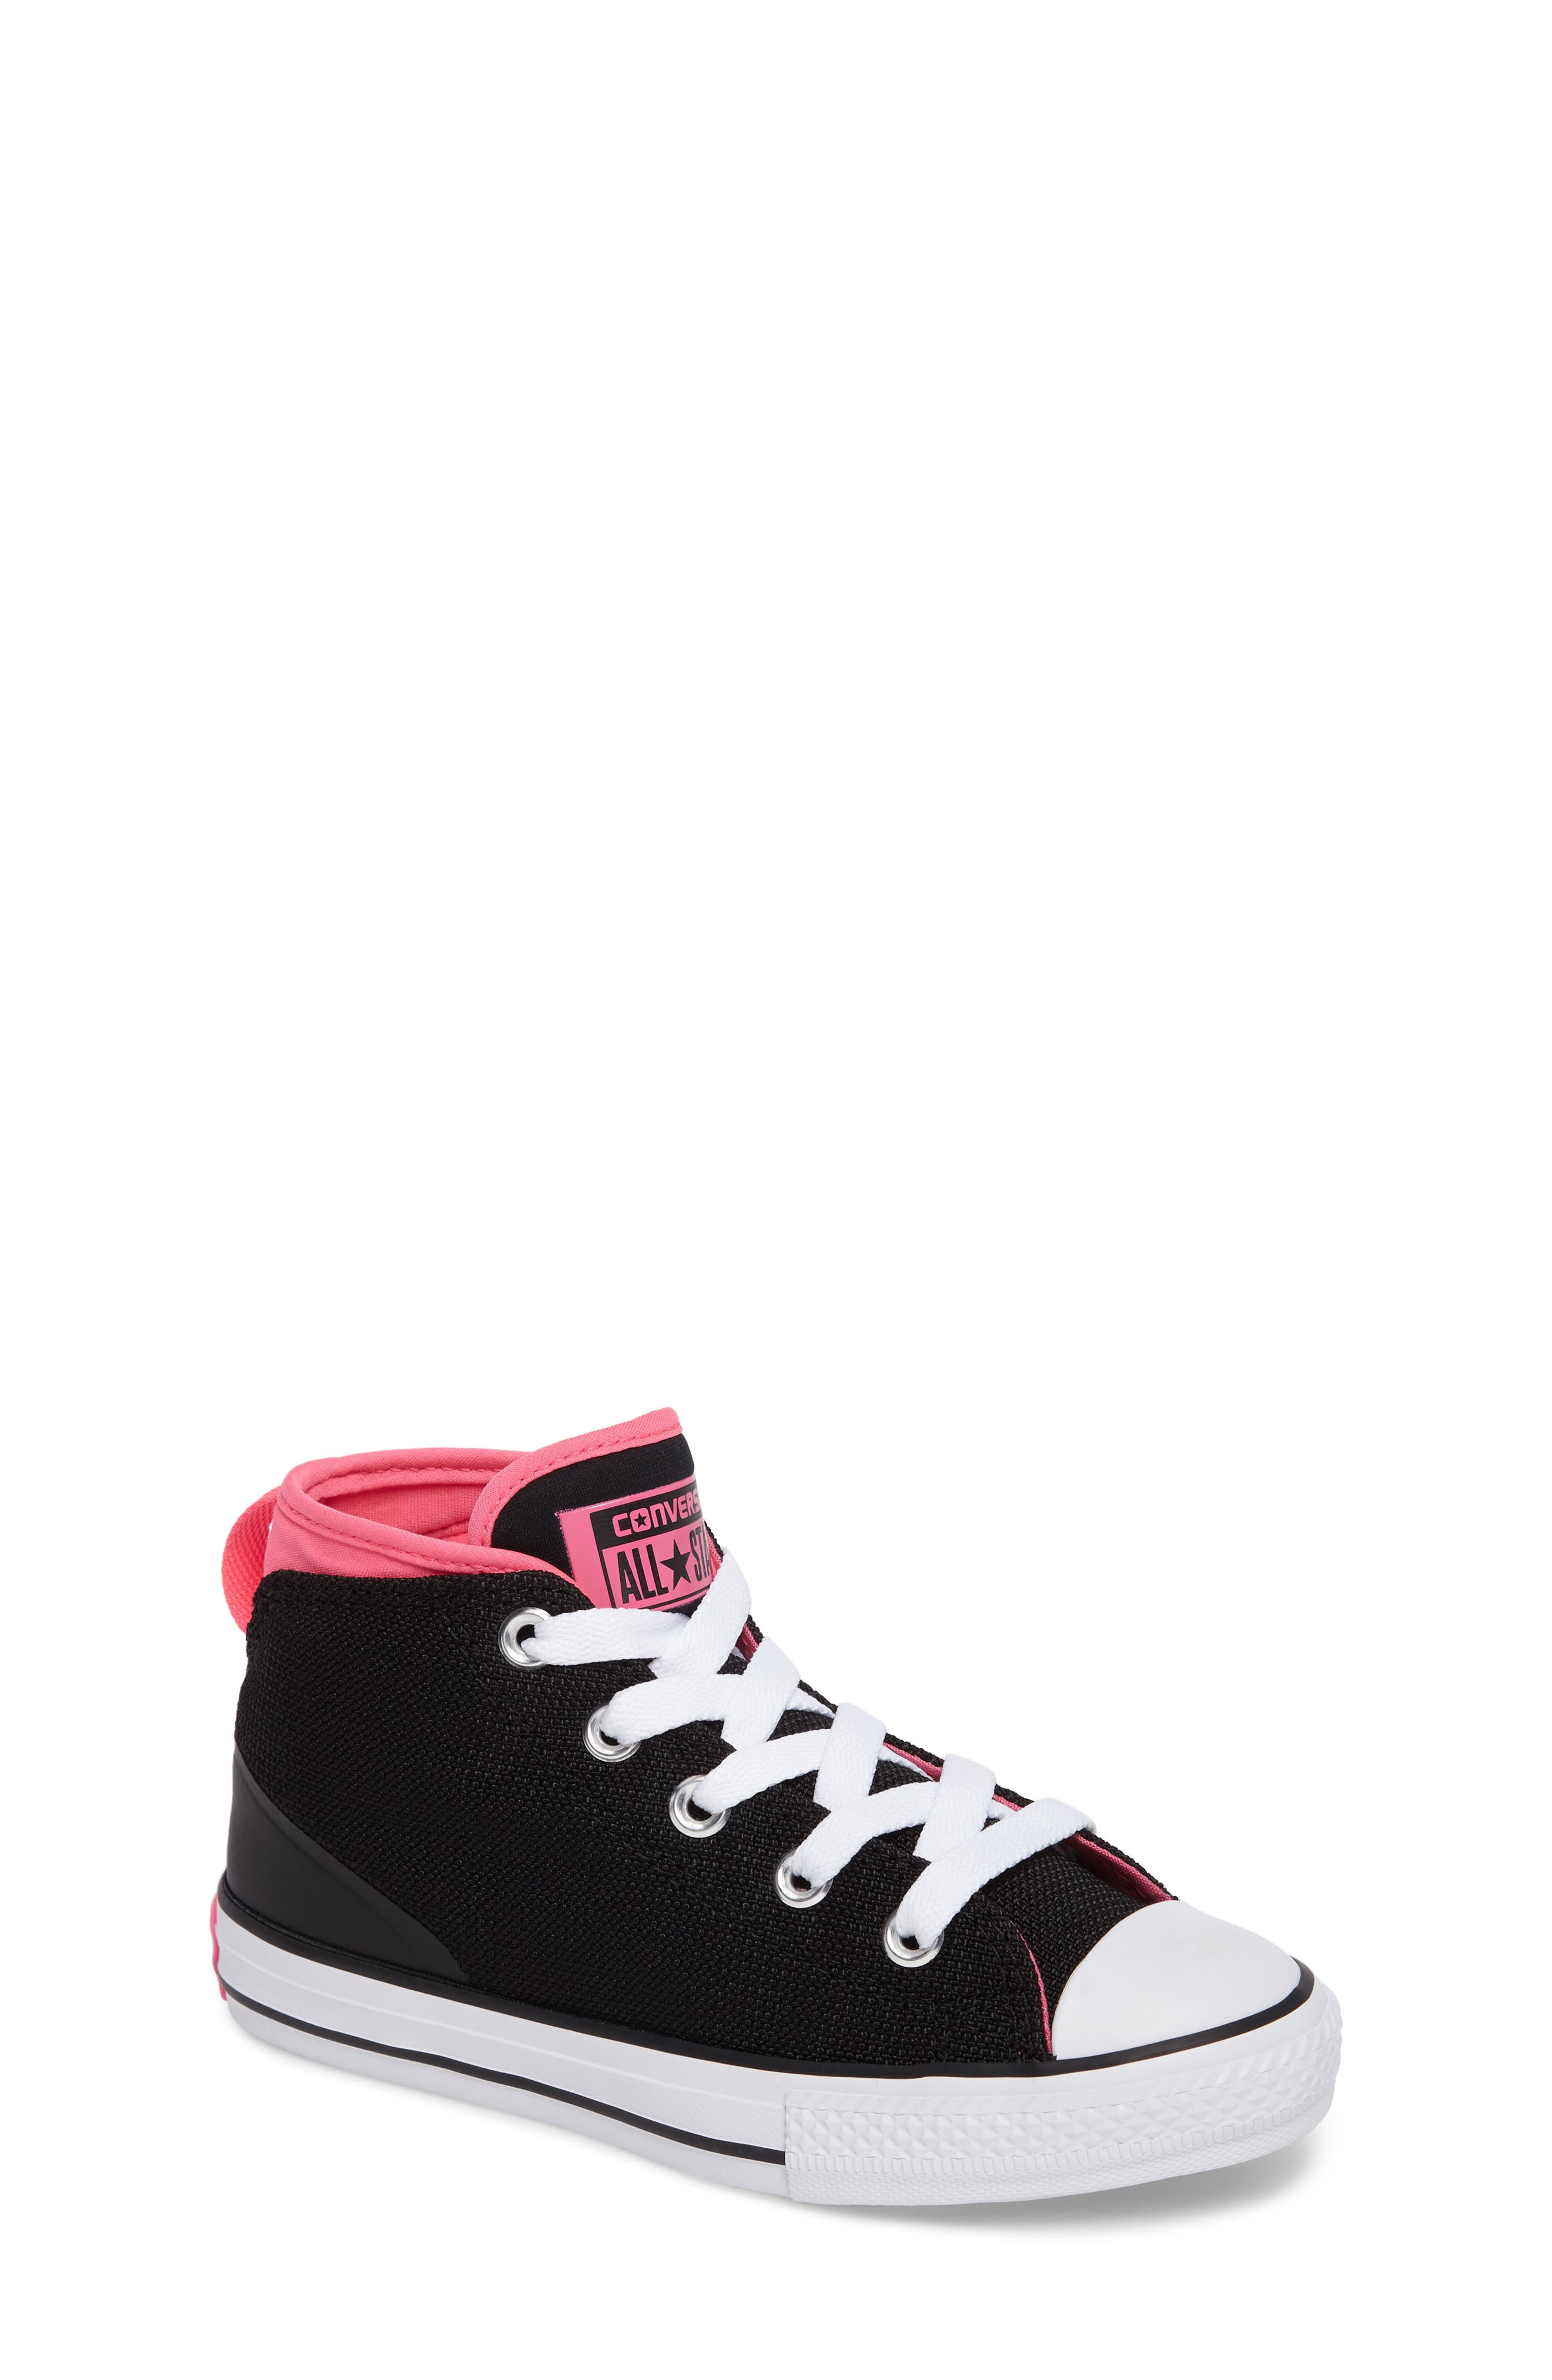 Converse Chuck Taylor® All Star® Syde Street Sneaker (Toddler, Little Kid & Big Kid)